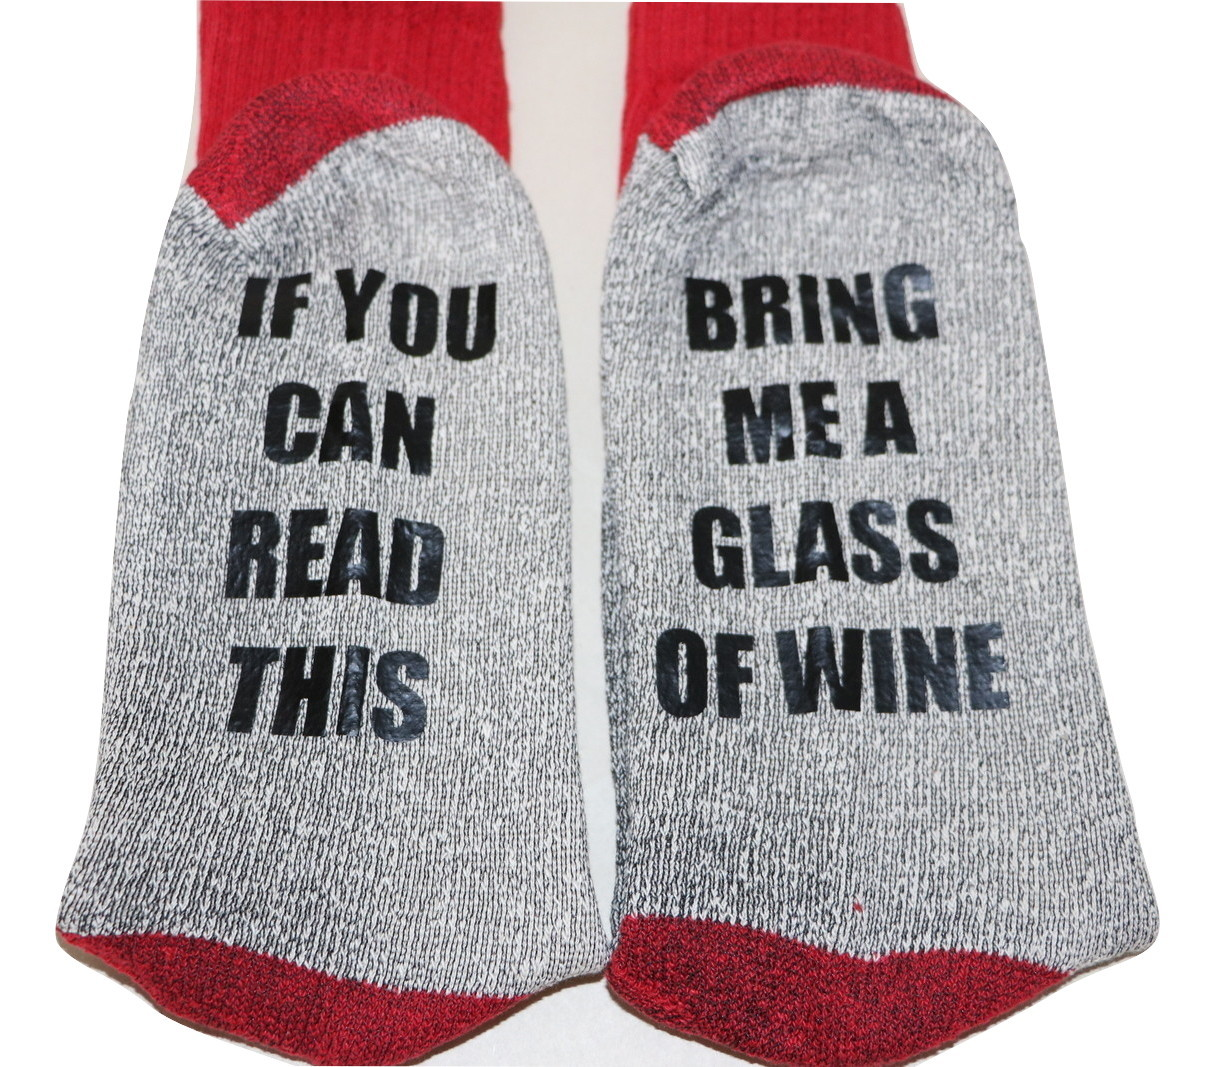 Novelty Socks - If you can Read This Bring Me a Glass of Wine Grey / Red